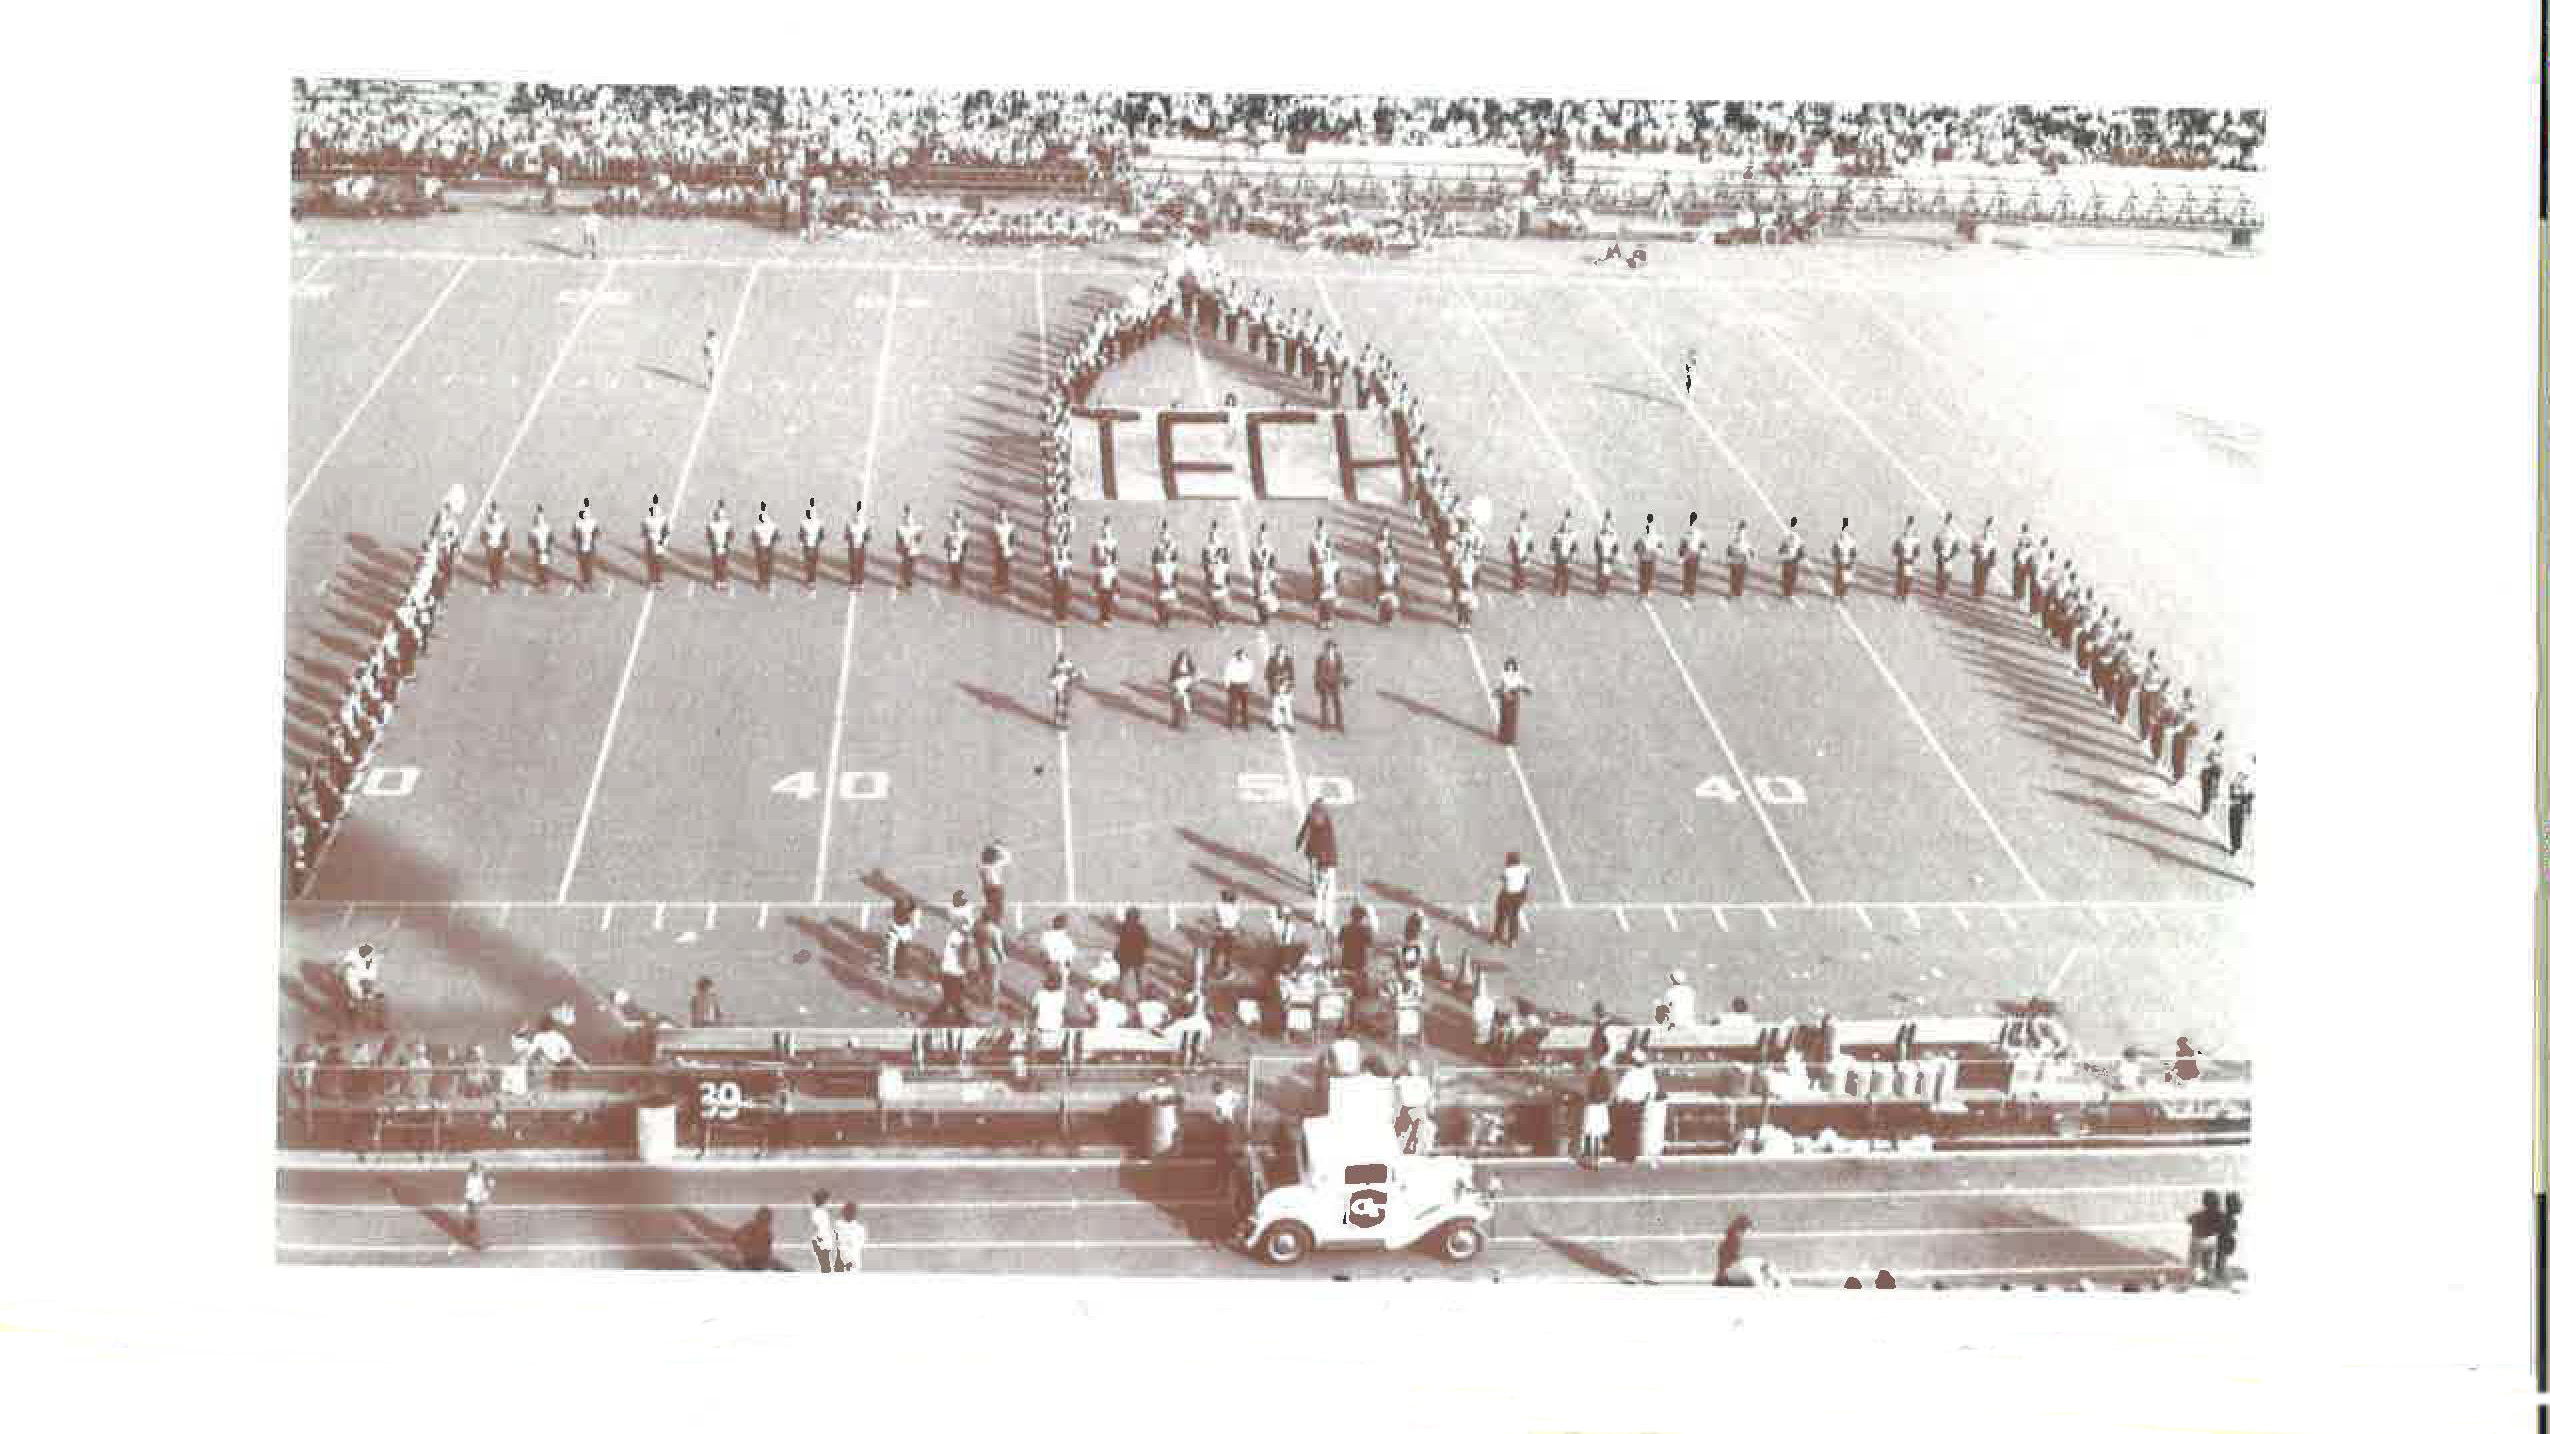 A shot of the Marching Band on the field of Bobby Dodd stadium in the 1970s.